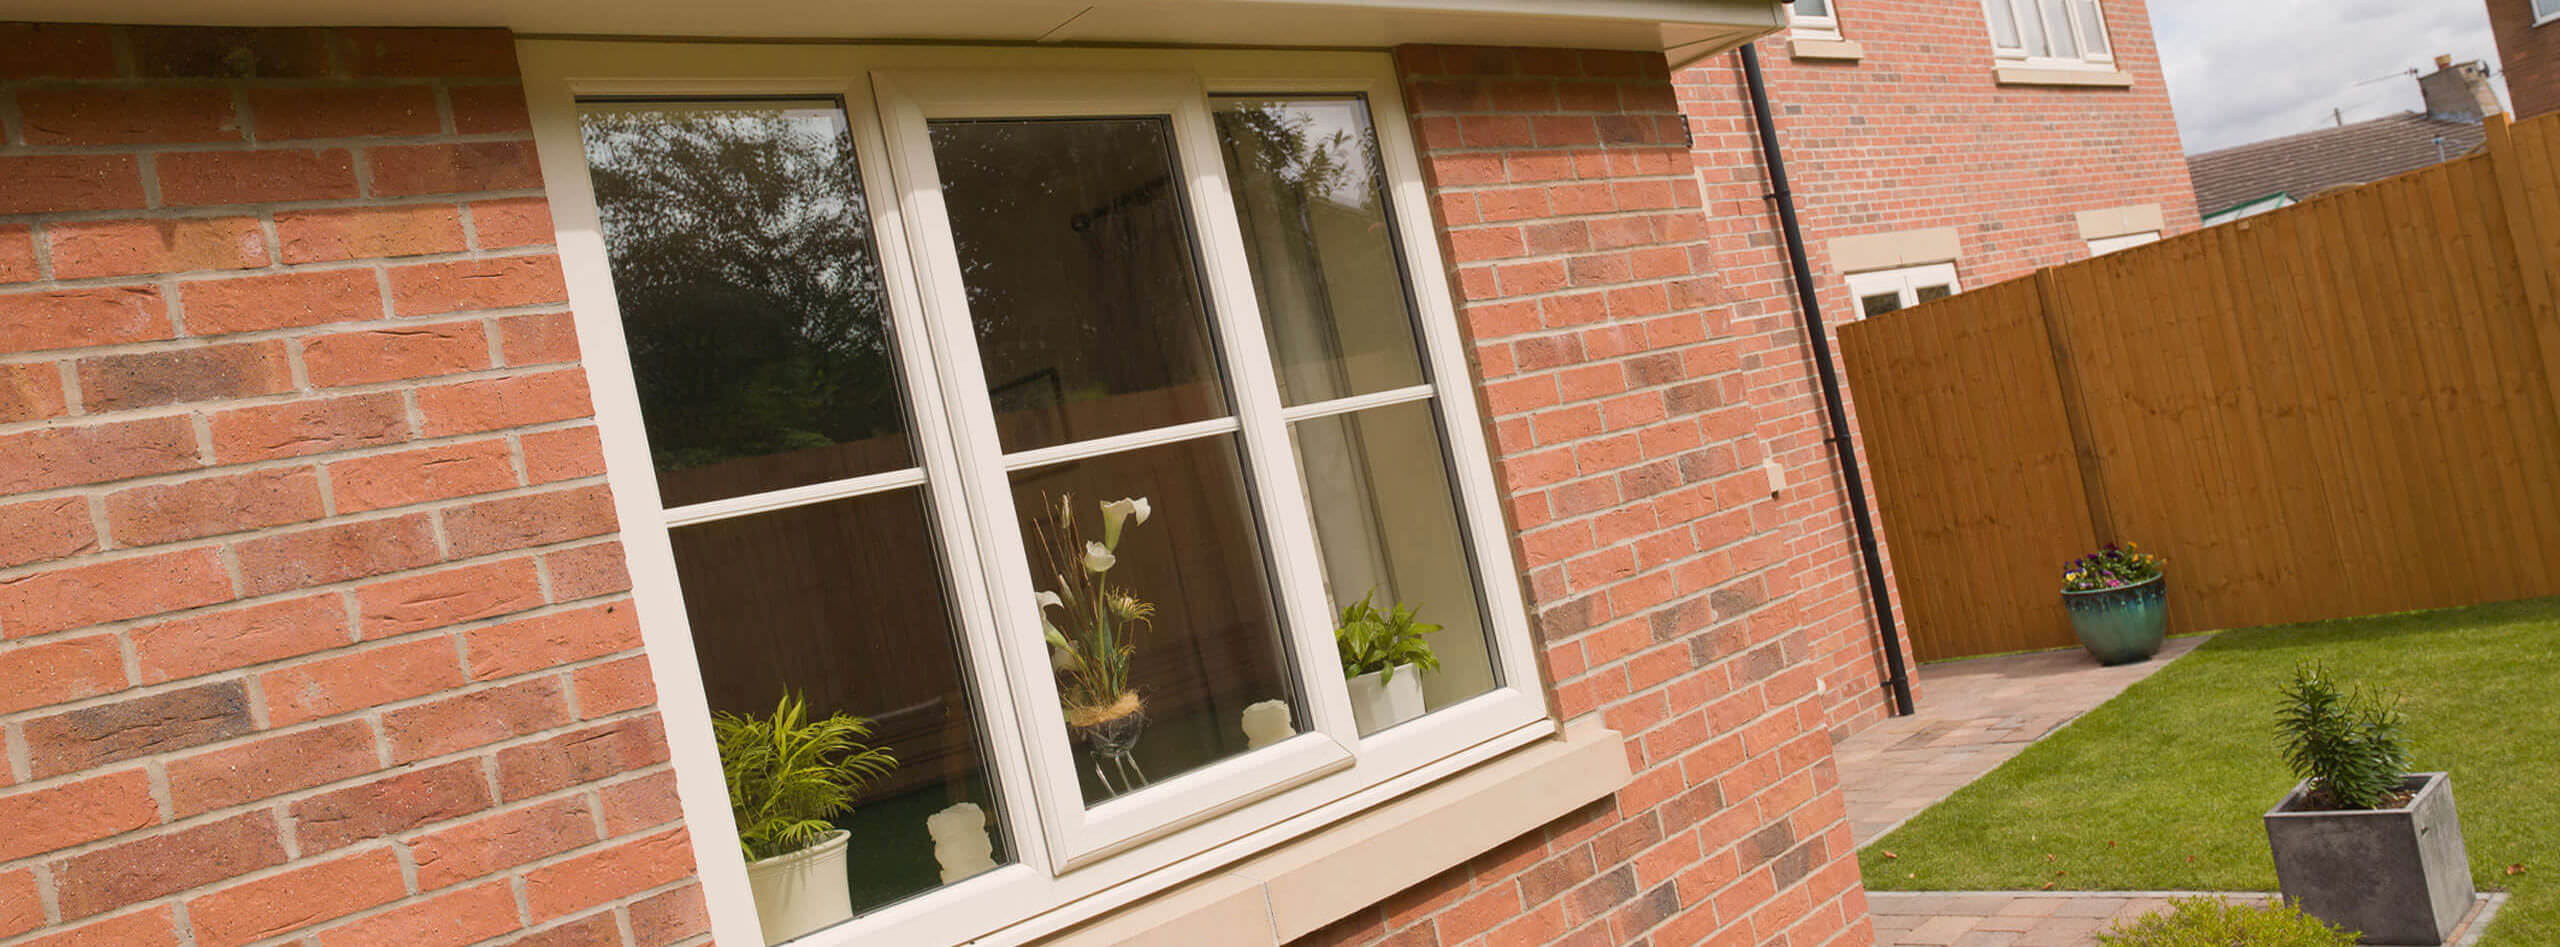 Double Glazing In Epsom Upvc Windows And Doors